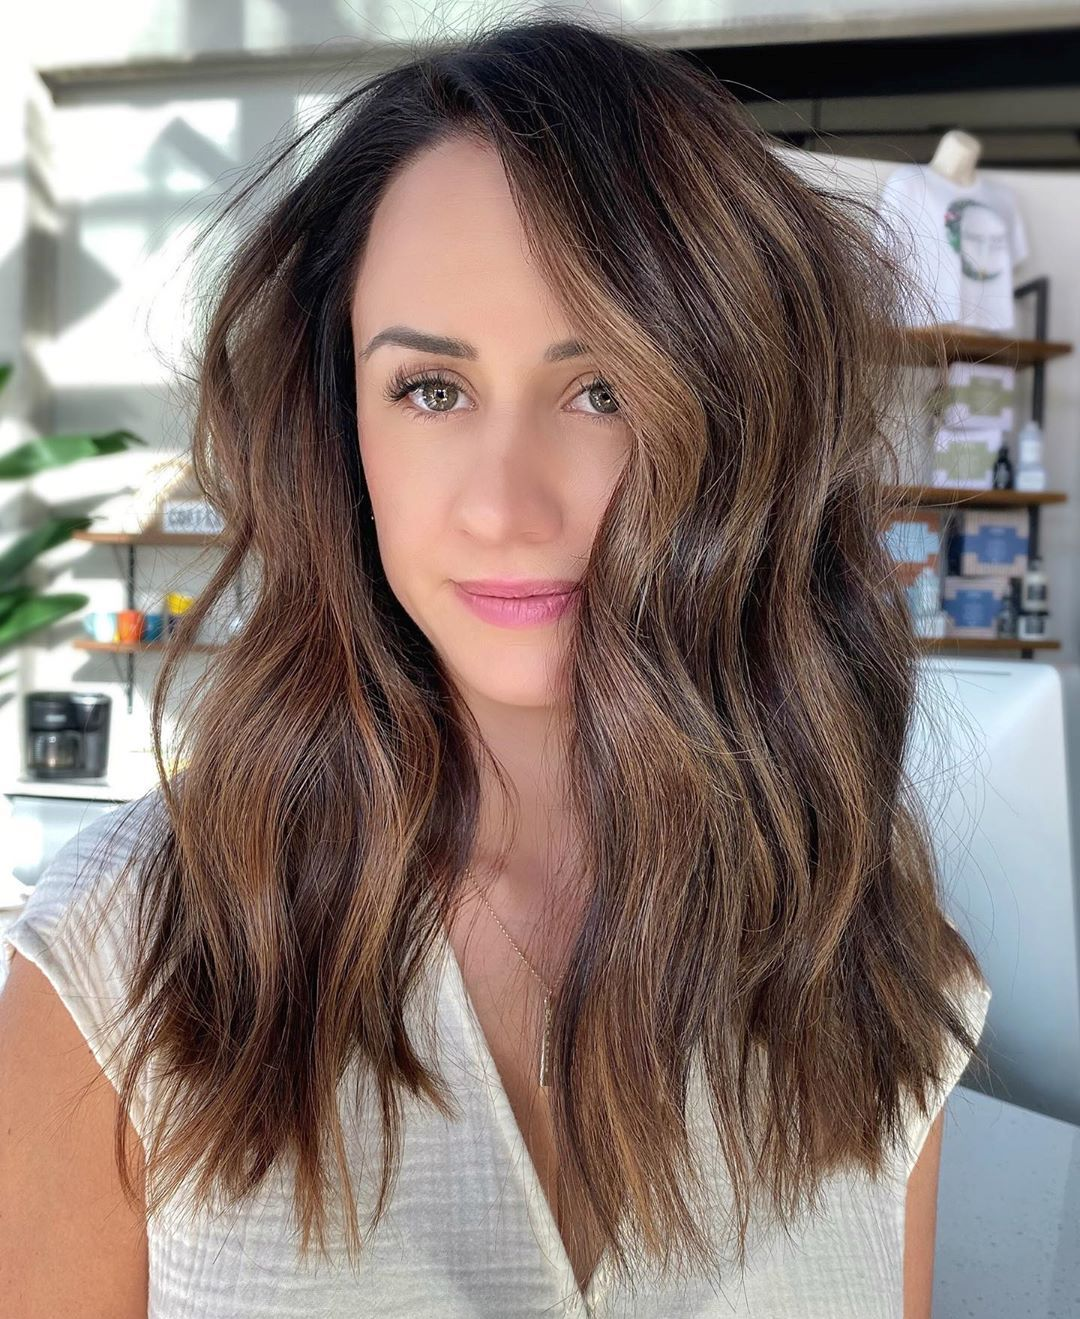 Armpit-Length Messy Hairstyle with Waves